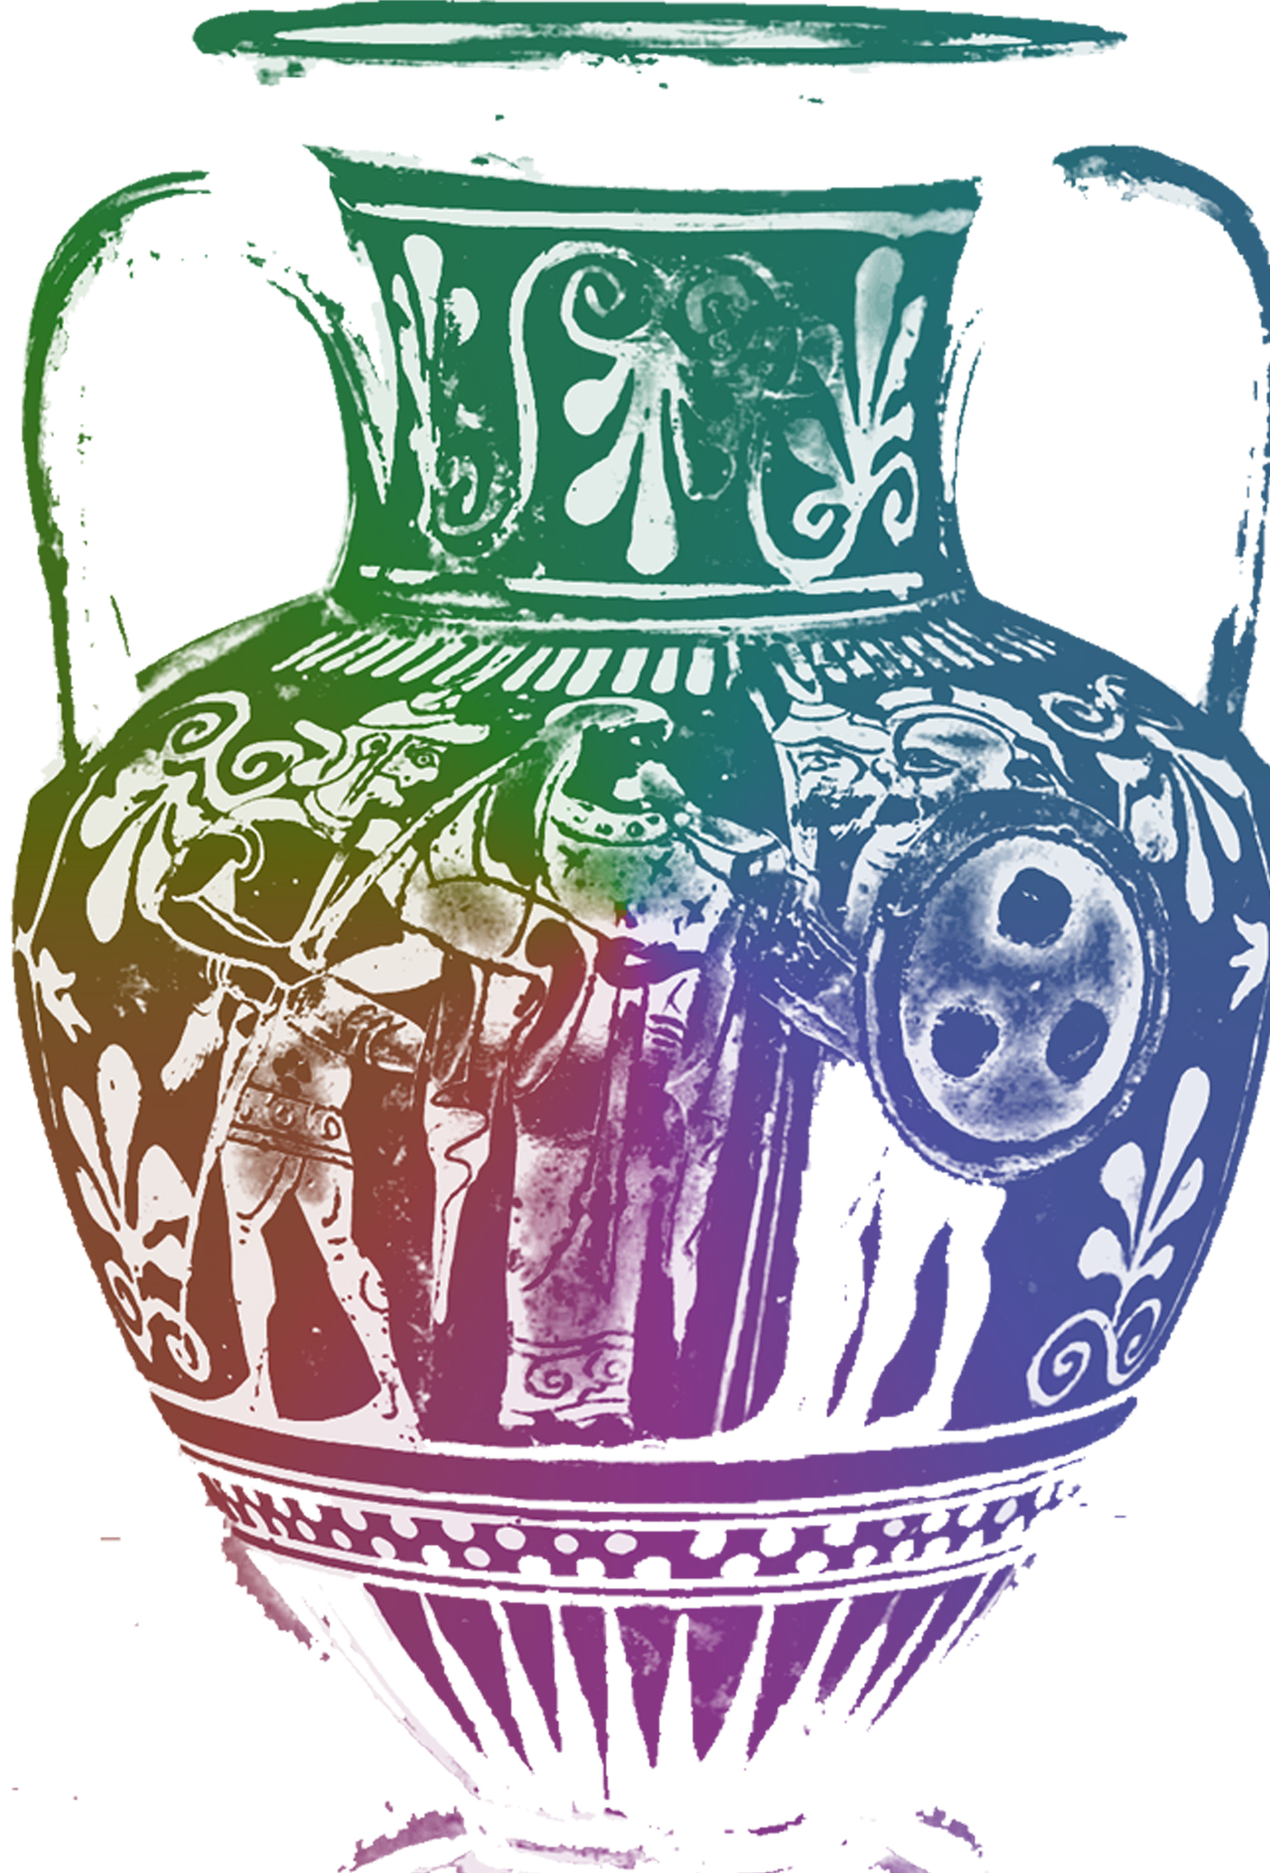 Sketchy and rainbow colourised image of a Greek amphora.